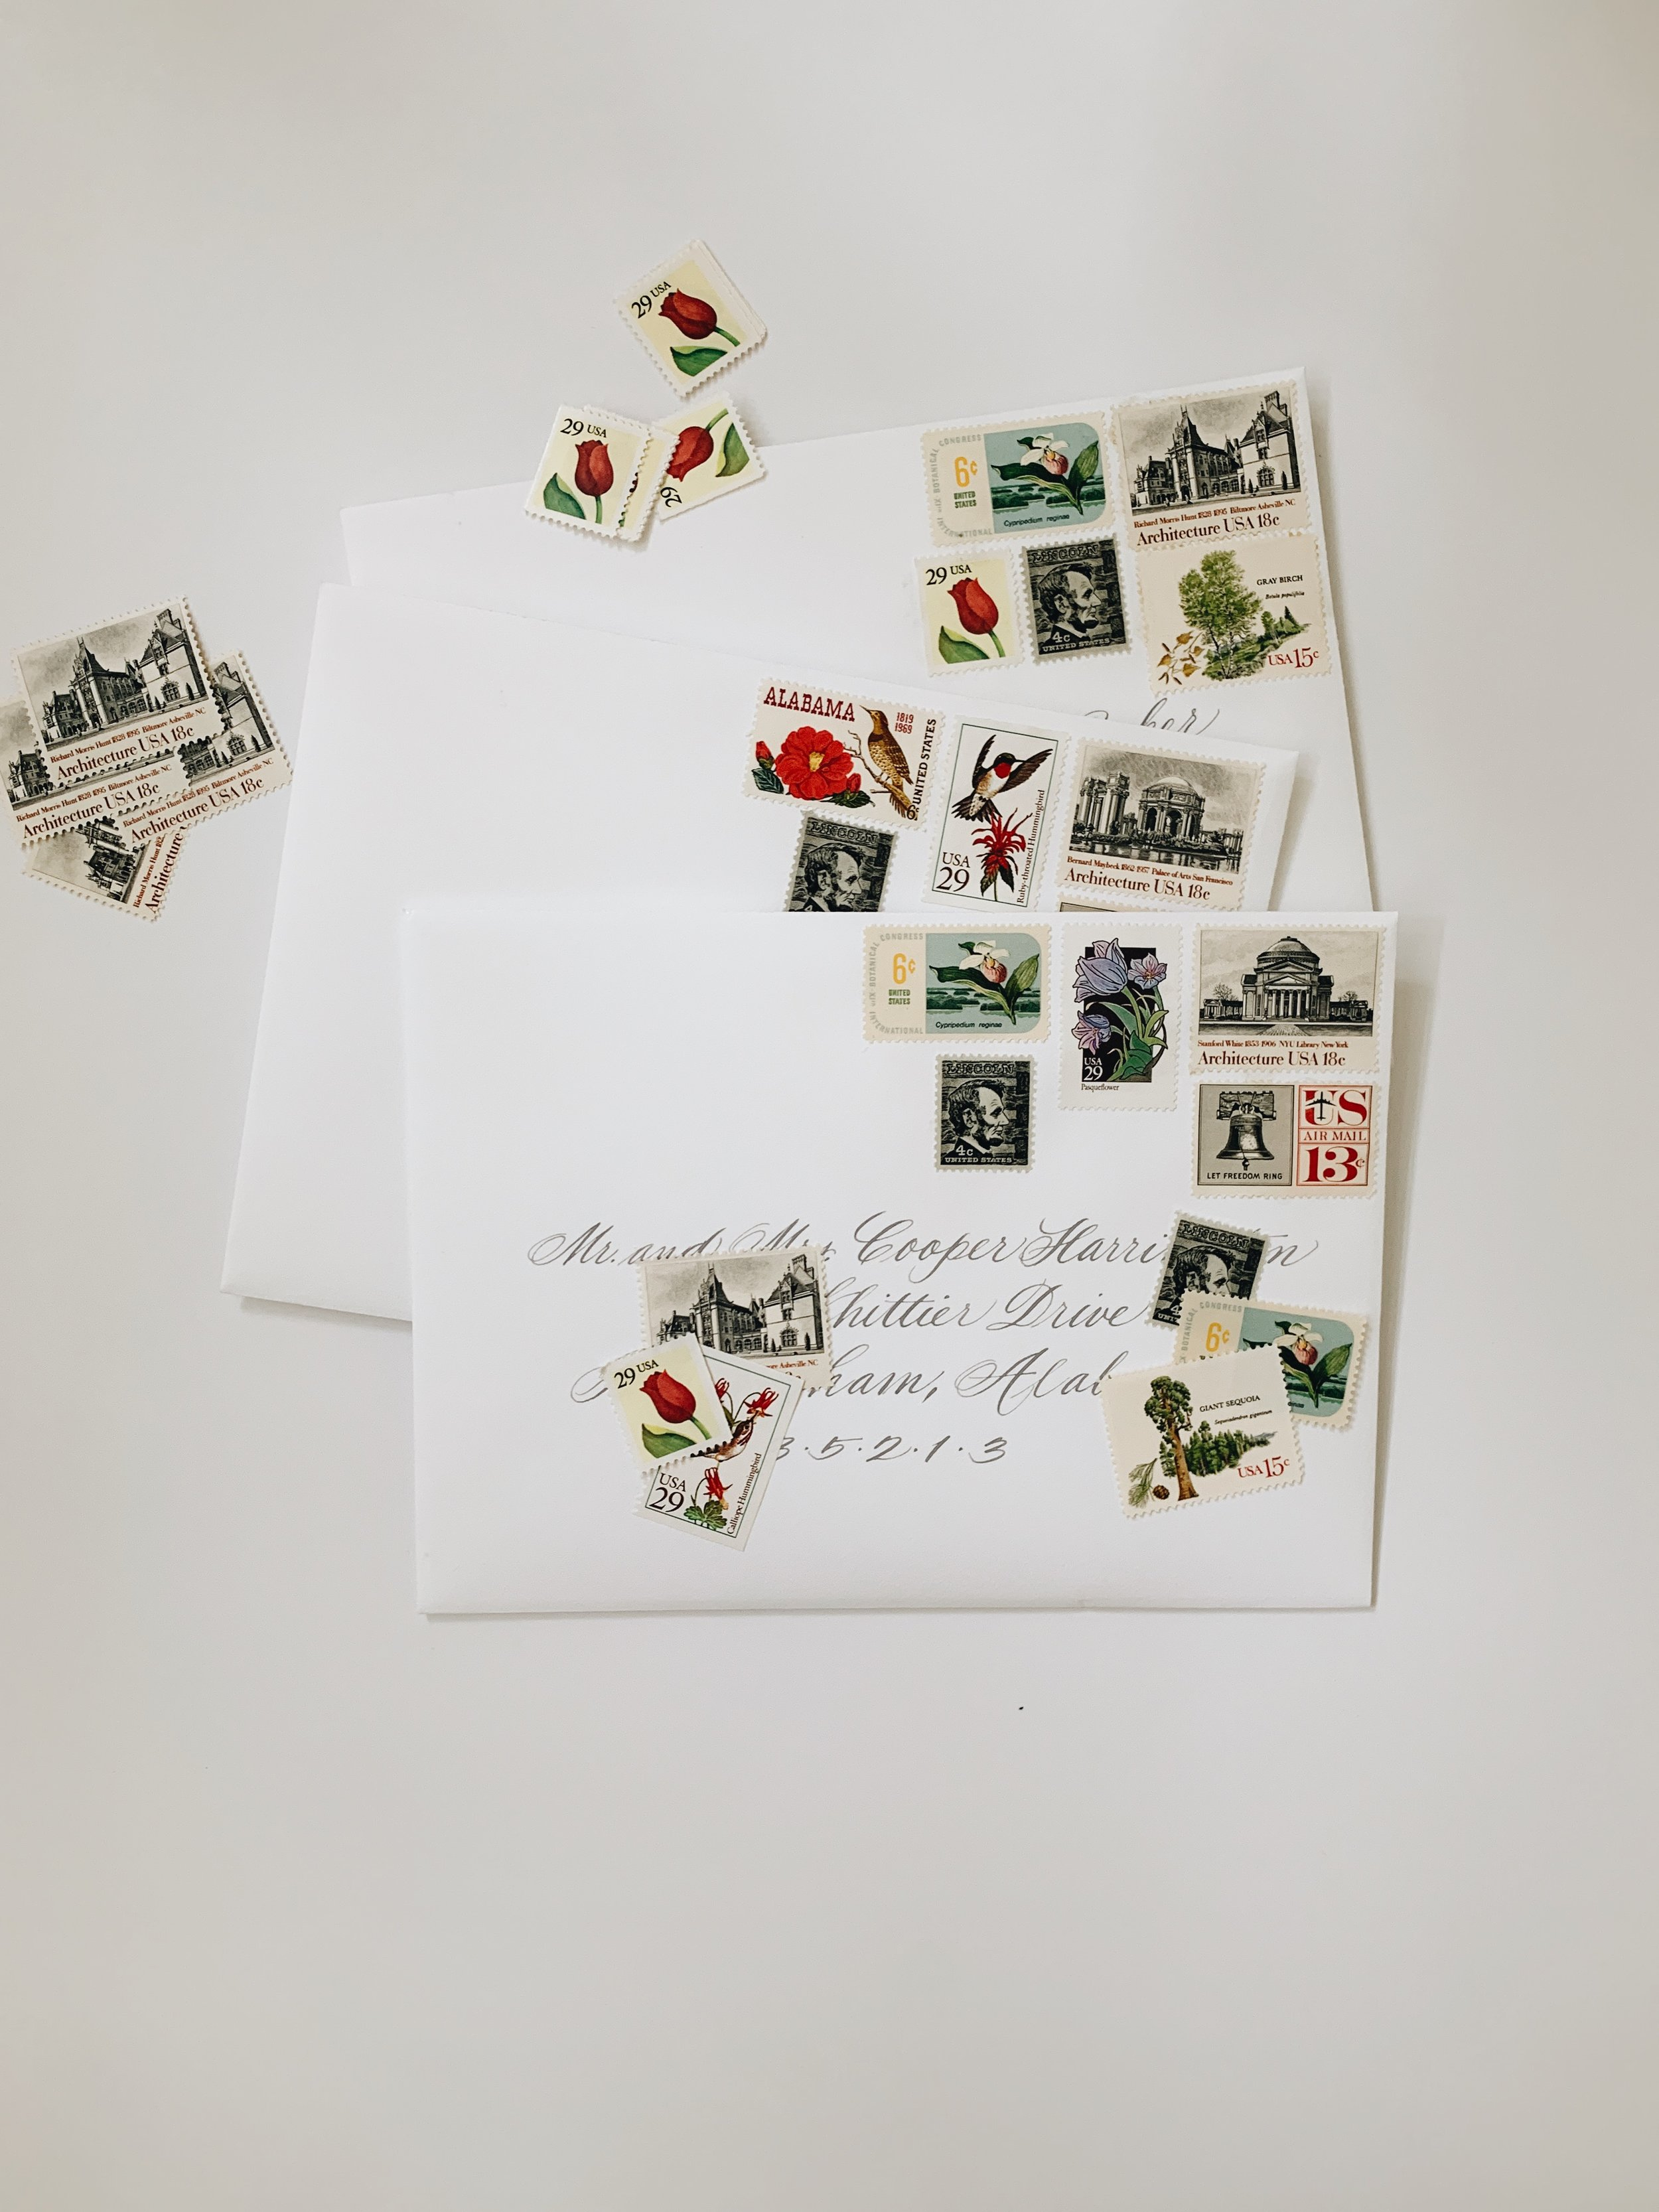 Vintage Stamps   Vintage stamps have the ability to turn any invitation into something different! By combining multiple different stamps a couple can add their own personal touch.